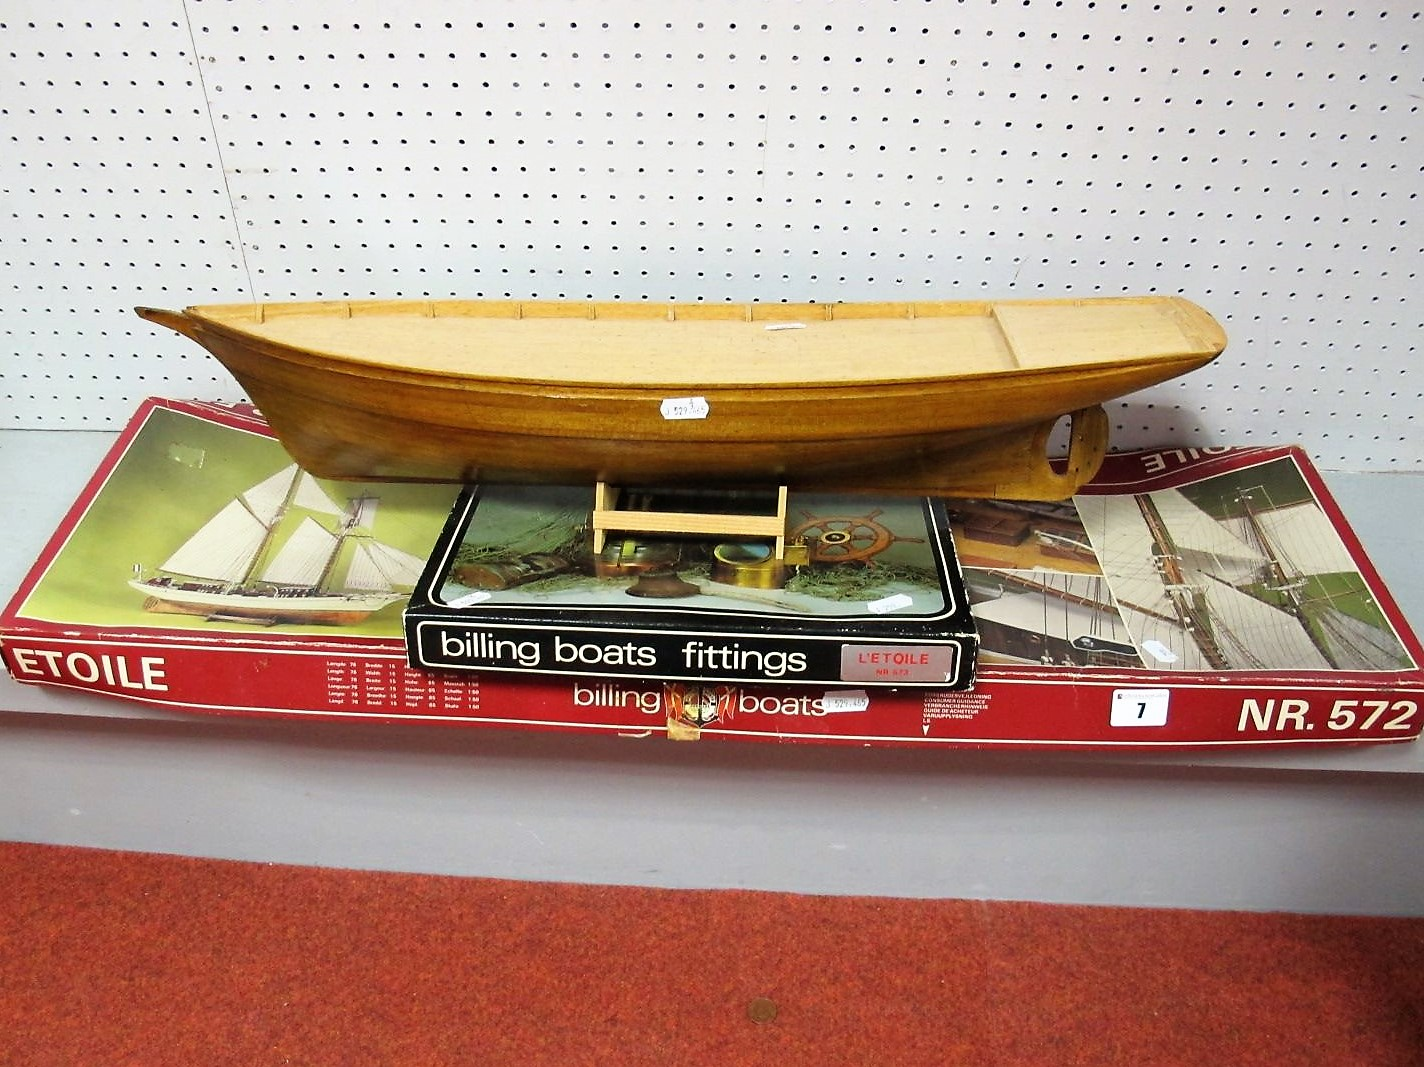 Lot 7 - A Billings Boat Models Kit #572 L'Etoile, the kit has been started with the hull built to a good